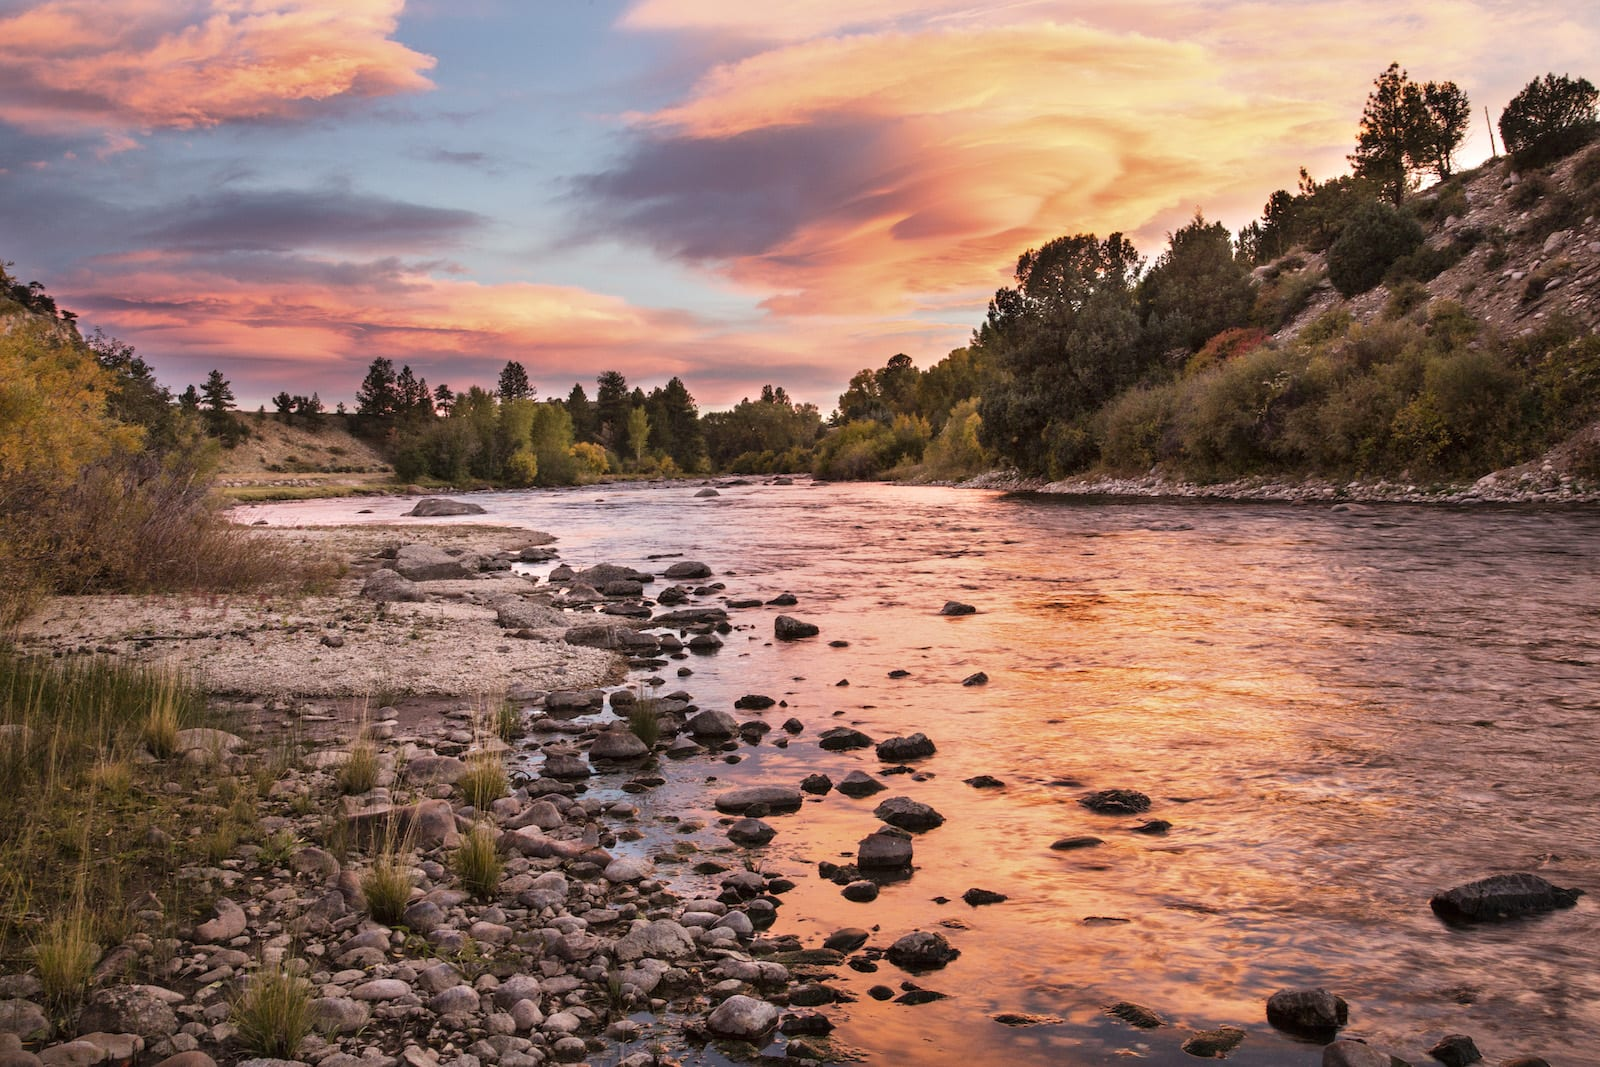 Arkansas River Browns Canyon National Monument Chaffee County Colorado